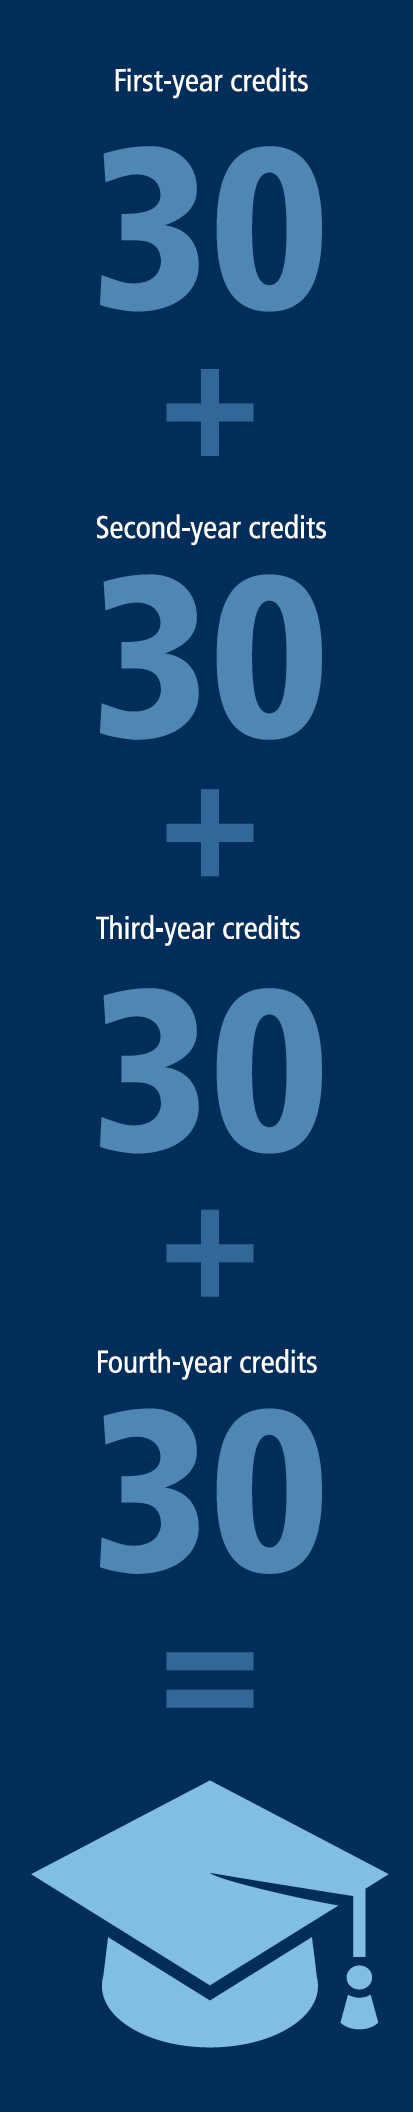 30 First-year credits plus 30 Second-year credits plus 30 Third-year credits plus 30 Fourth-year credits equals graduation